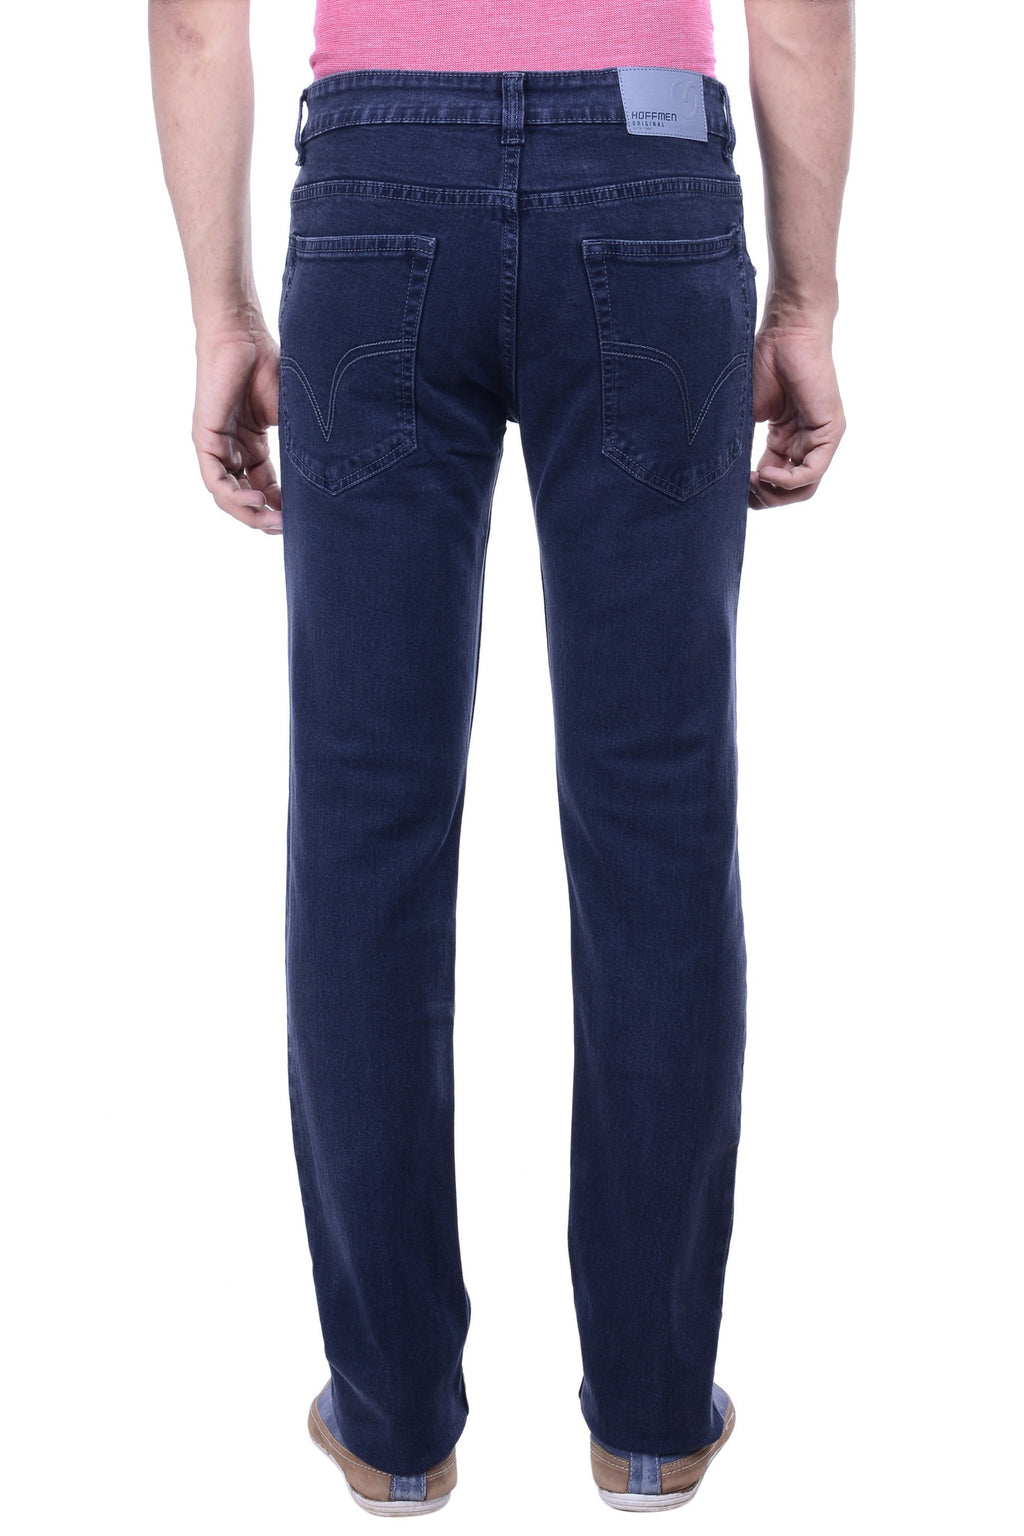 Hoffmen Slim Fit Deepgrey Men's Jeans BSG3908